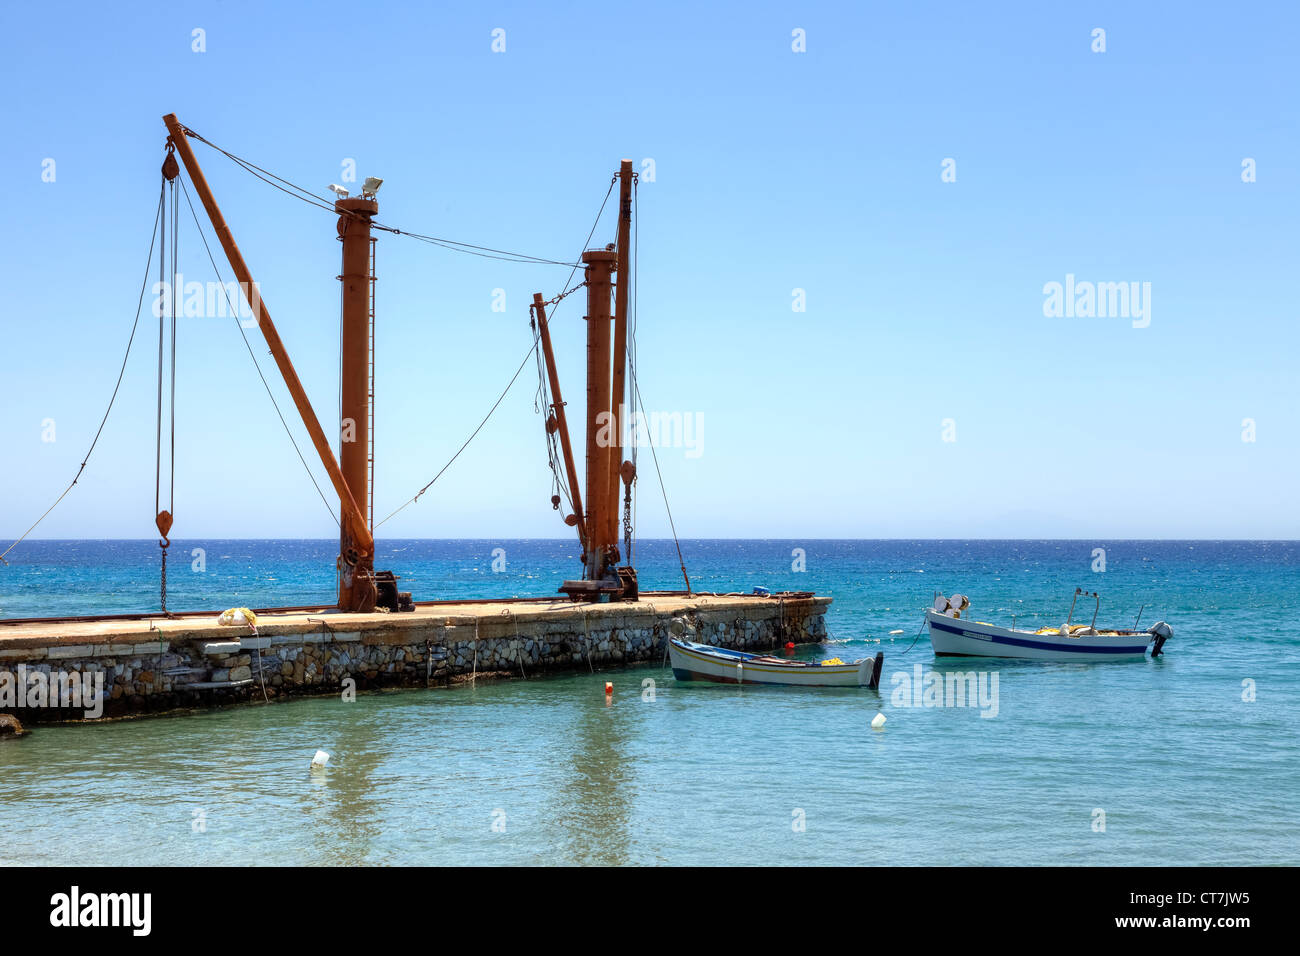 old loading cranes in the former mining port Moutsouna, Naxos, Greece - Stock Image